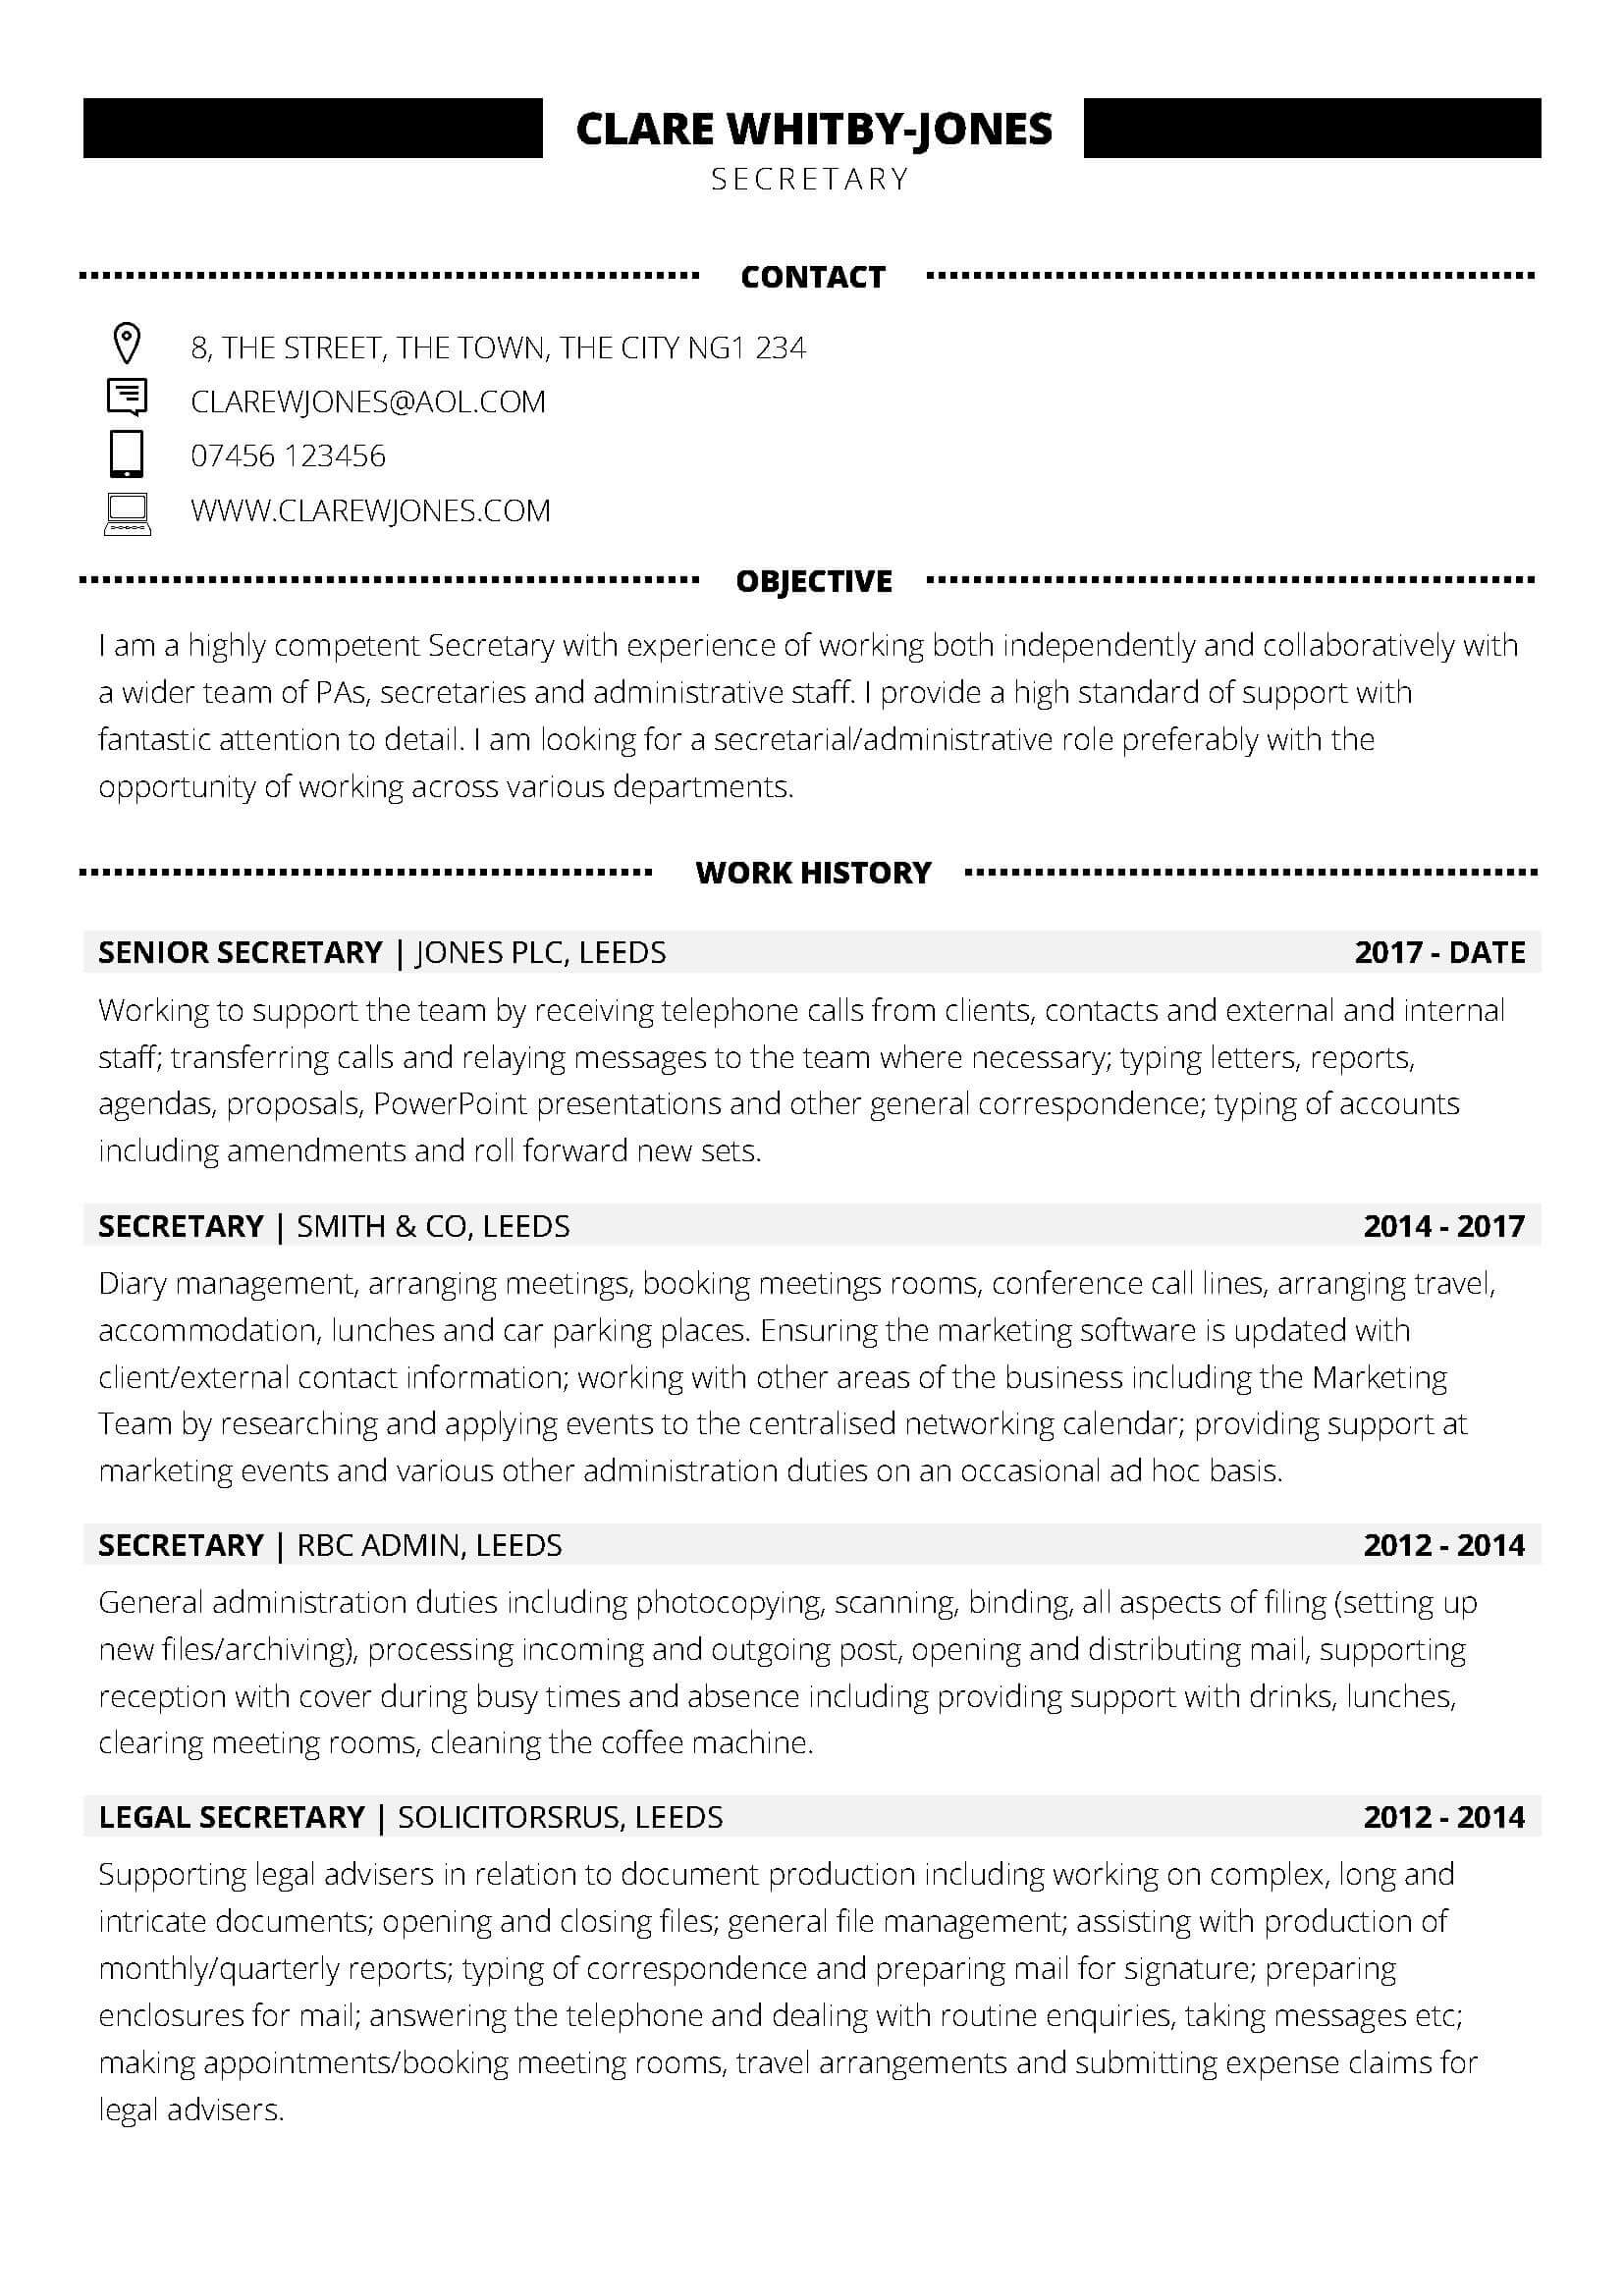 work history resume template